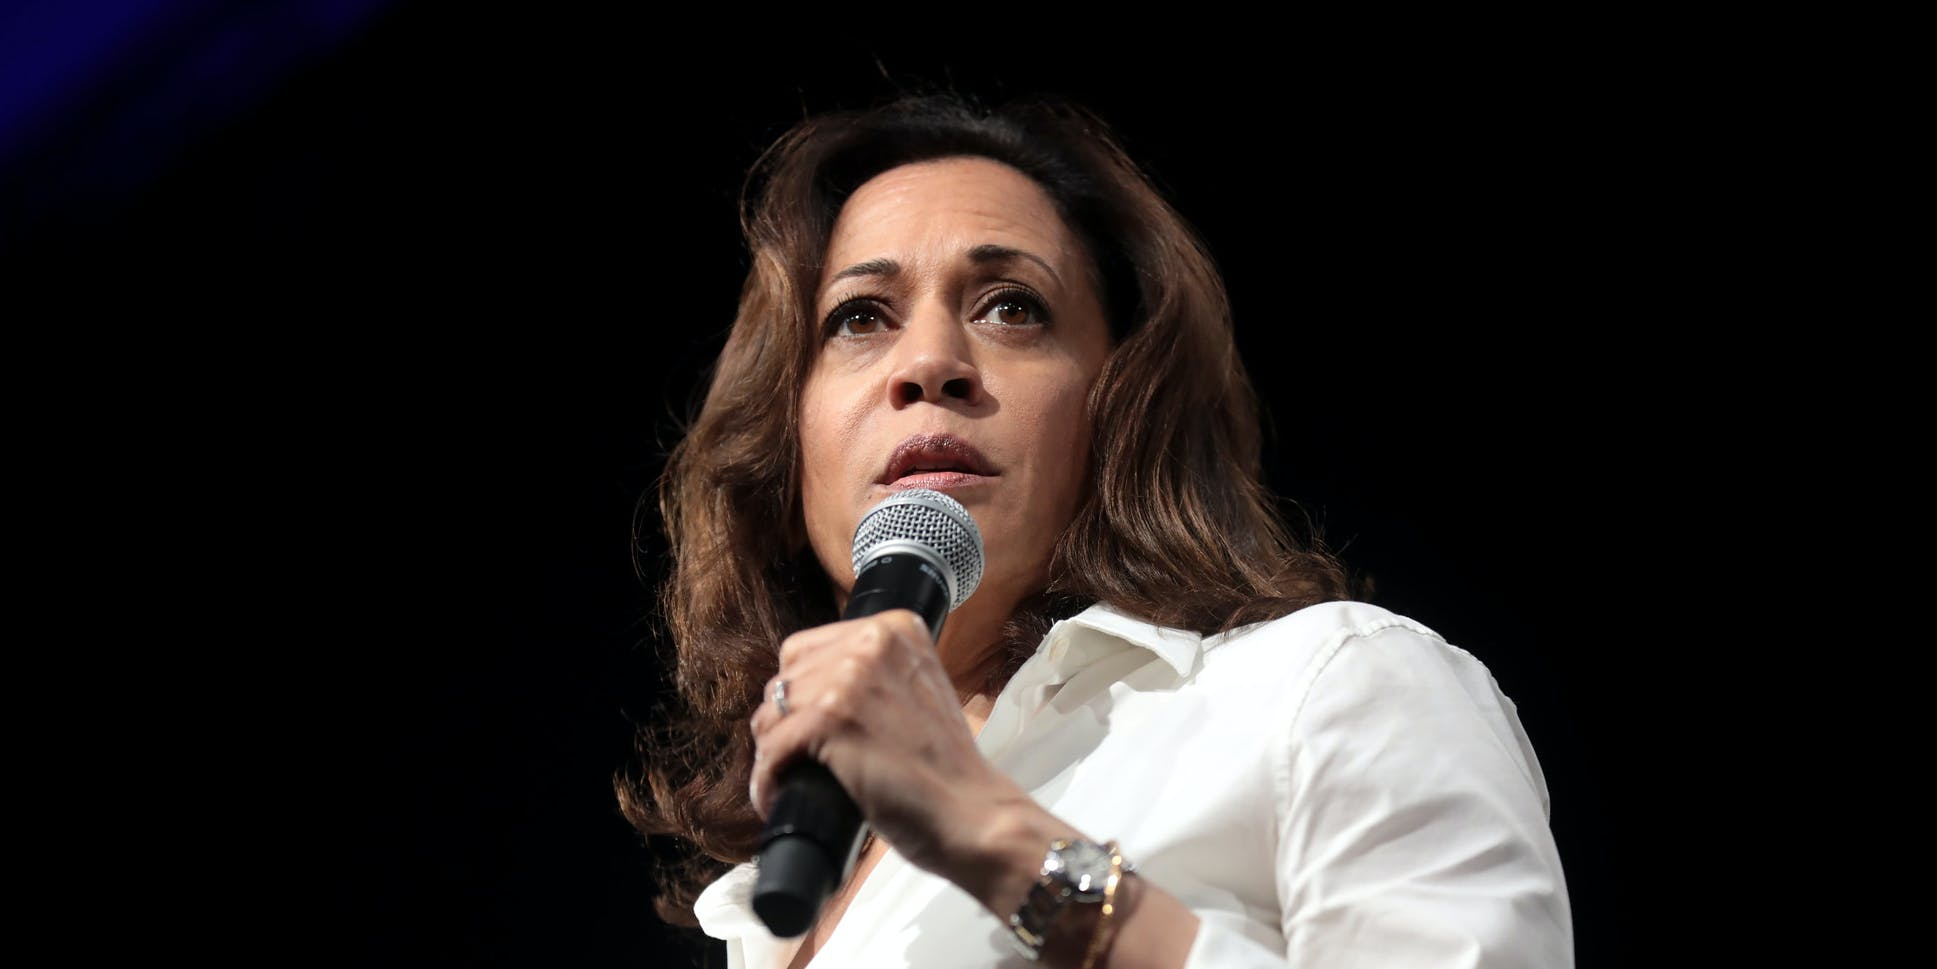 Where does Kamala Harris stand on tech issues?